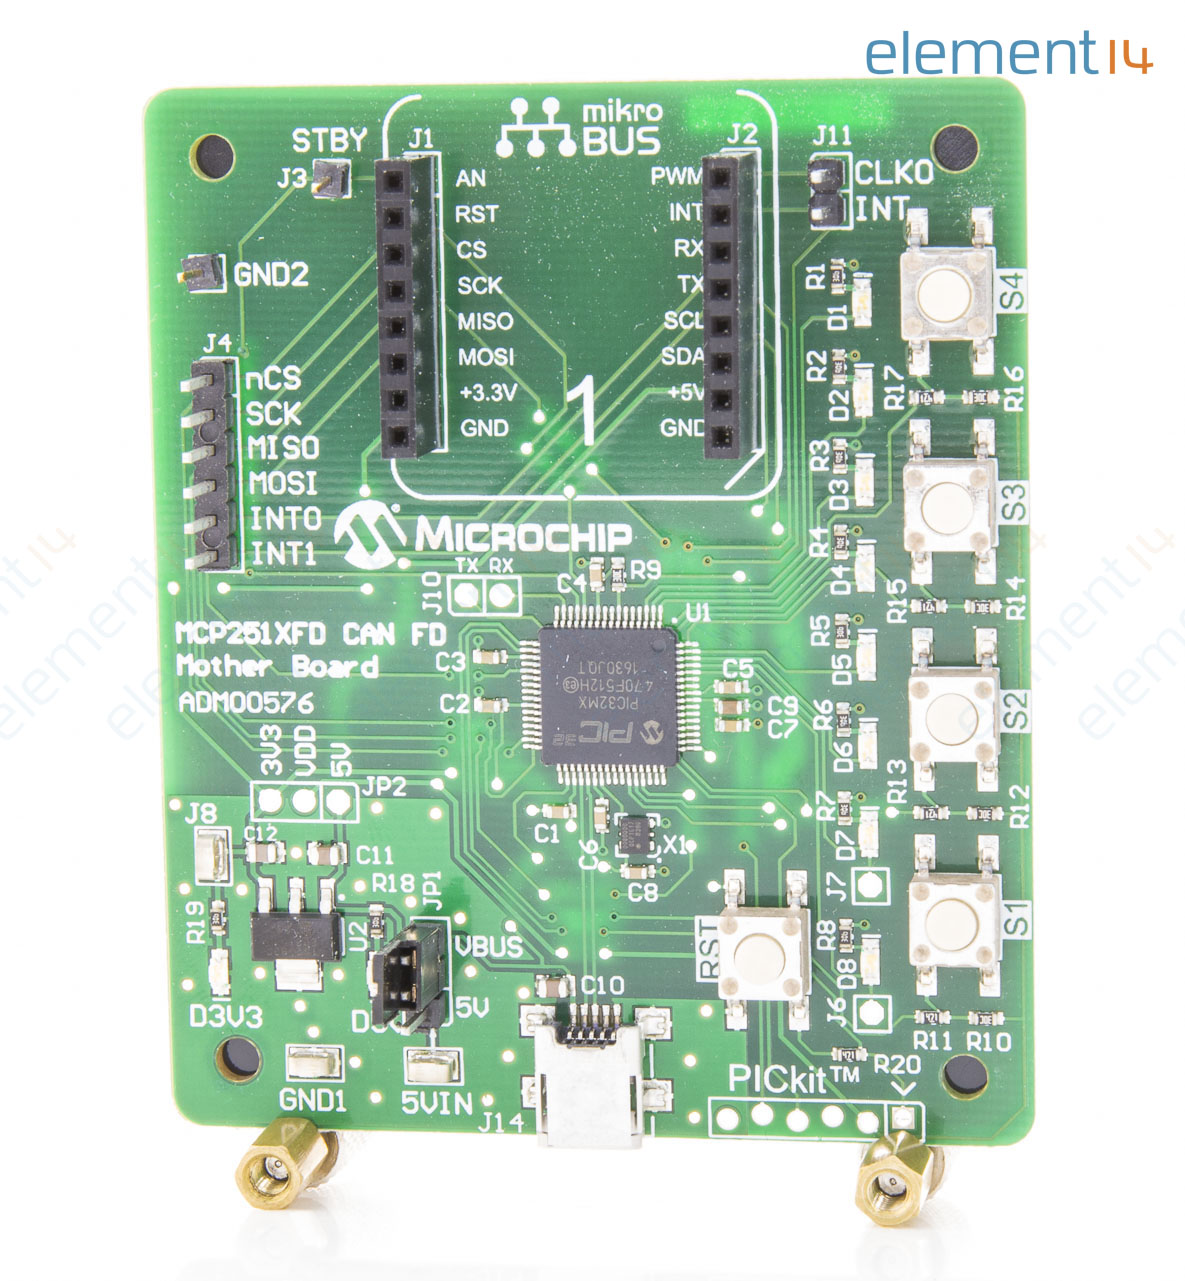 Evaluation Board, MCP2517FD Family CAN FD Controllers, mikroBUS Socket